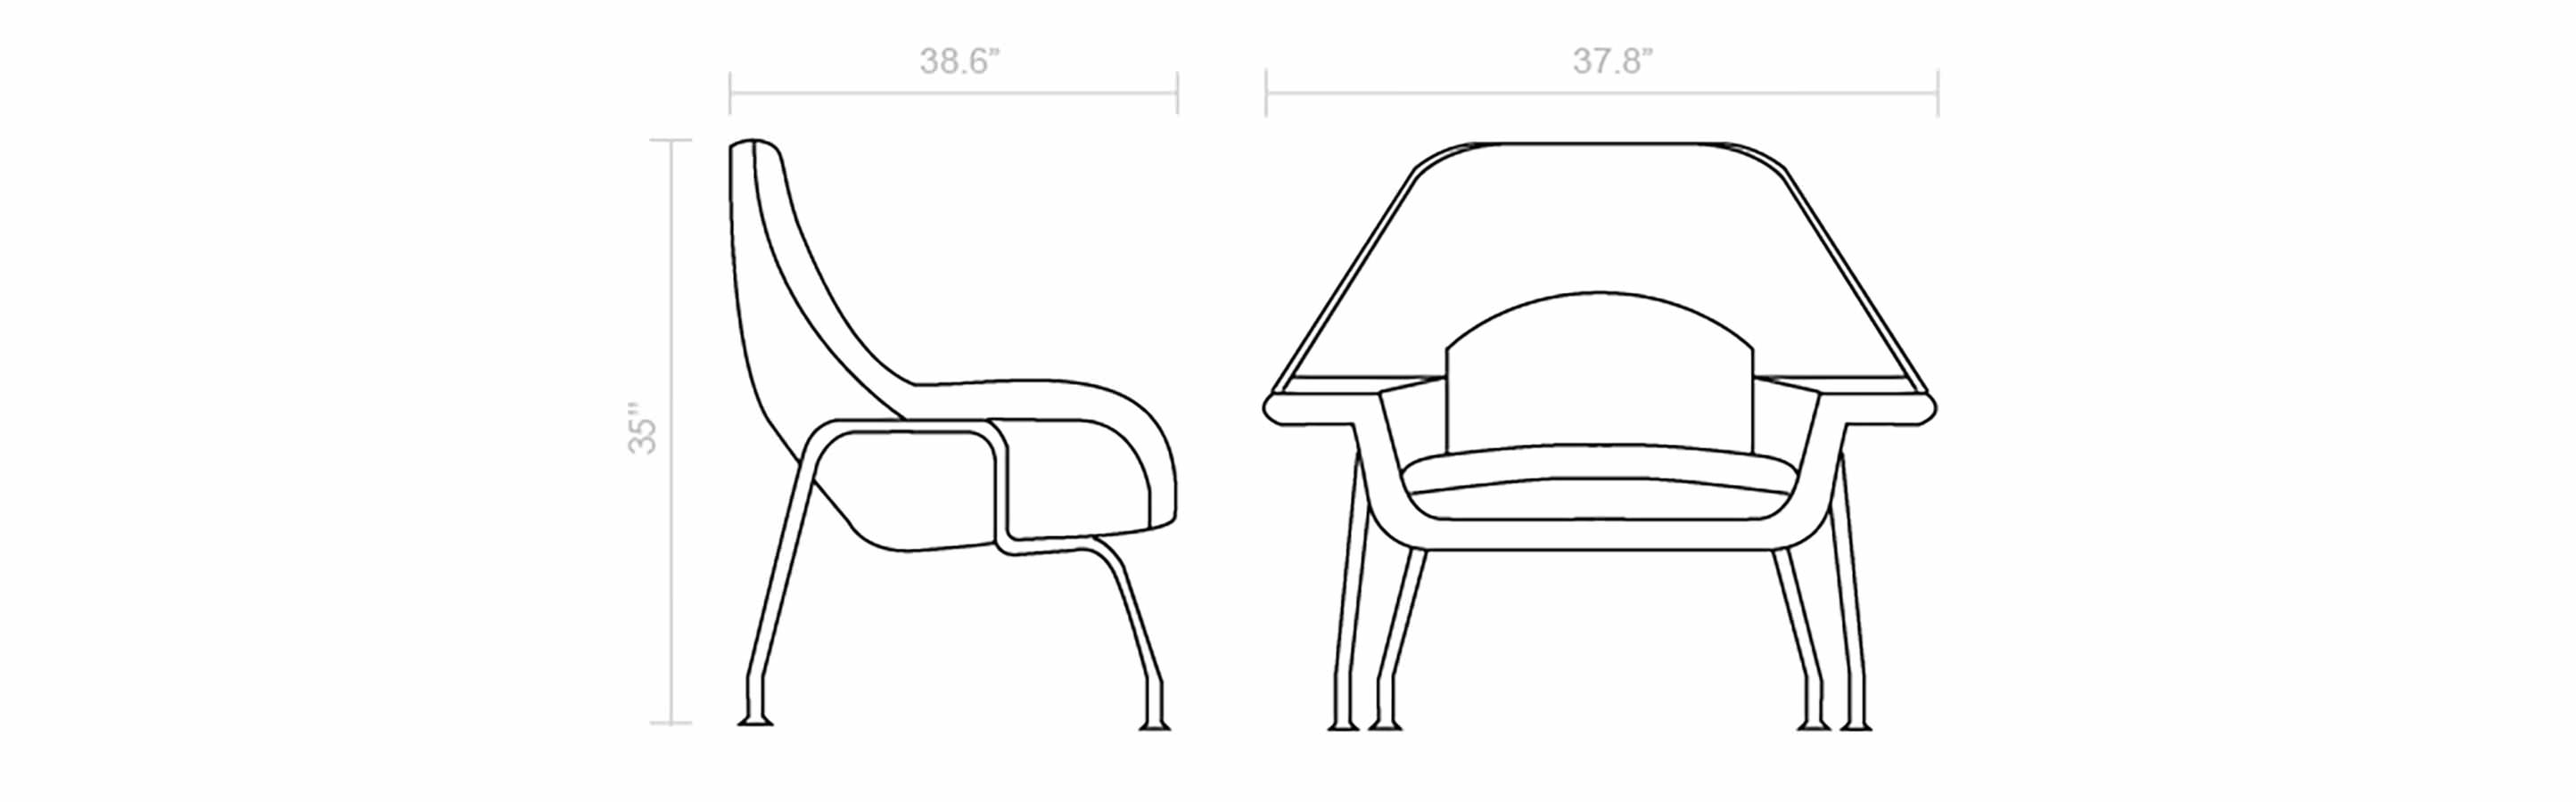 drawings-womb-chair-otto.jpg